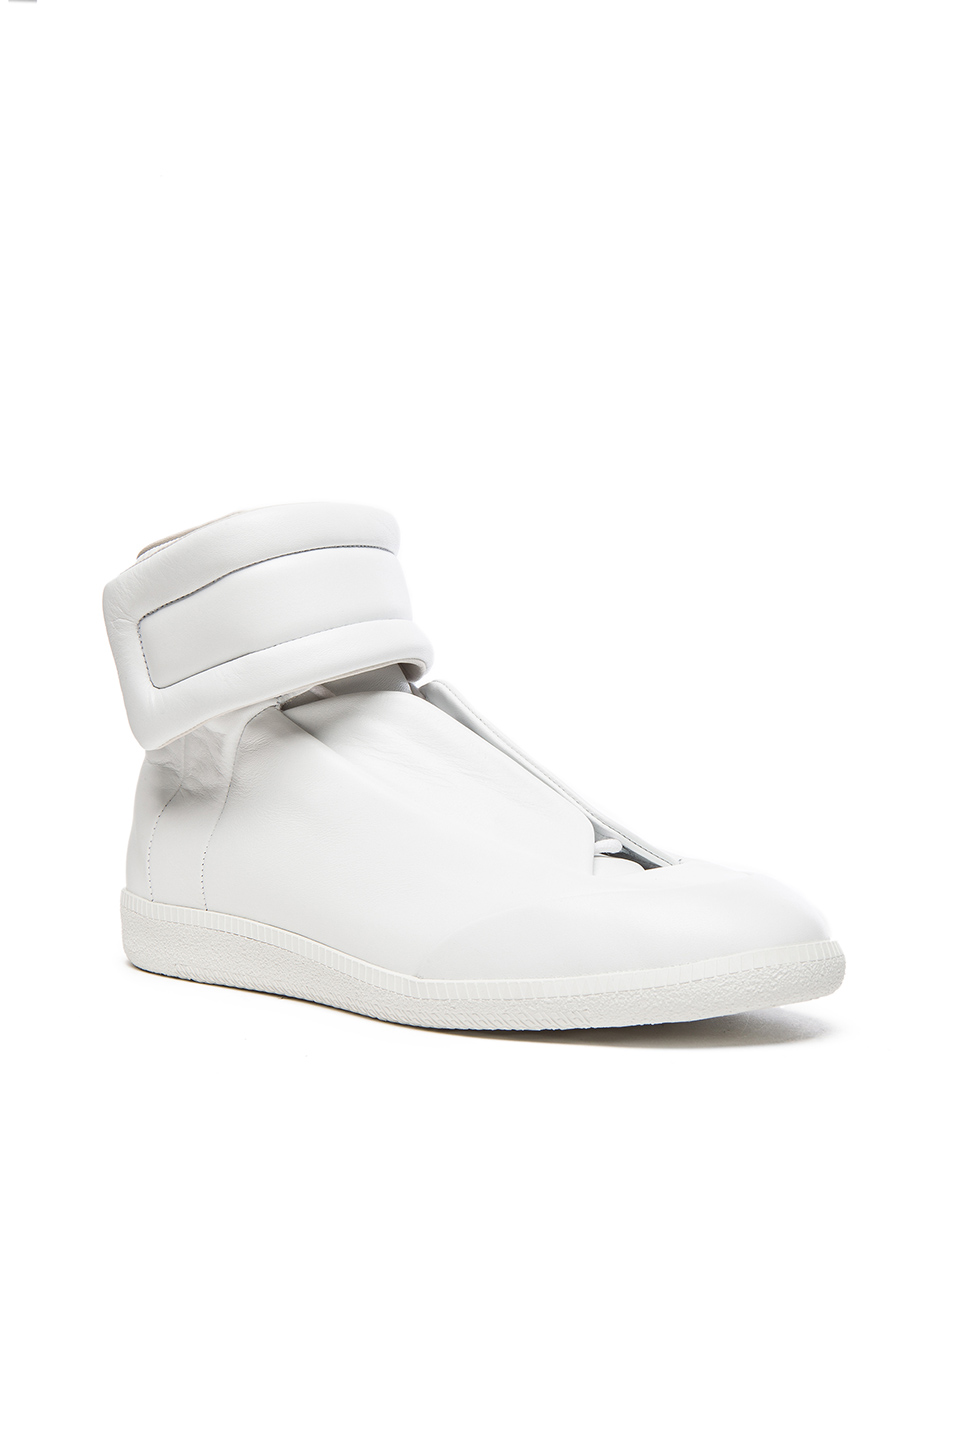 Maison Margiela Future Leather High Tops in White